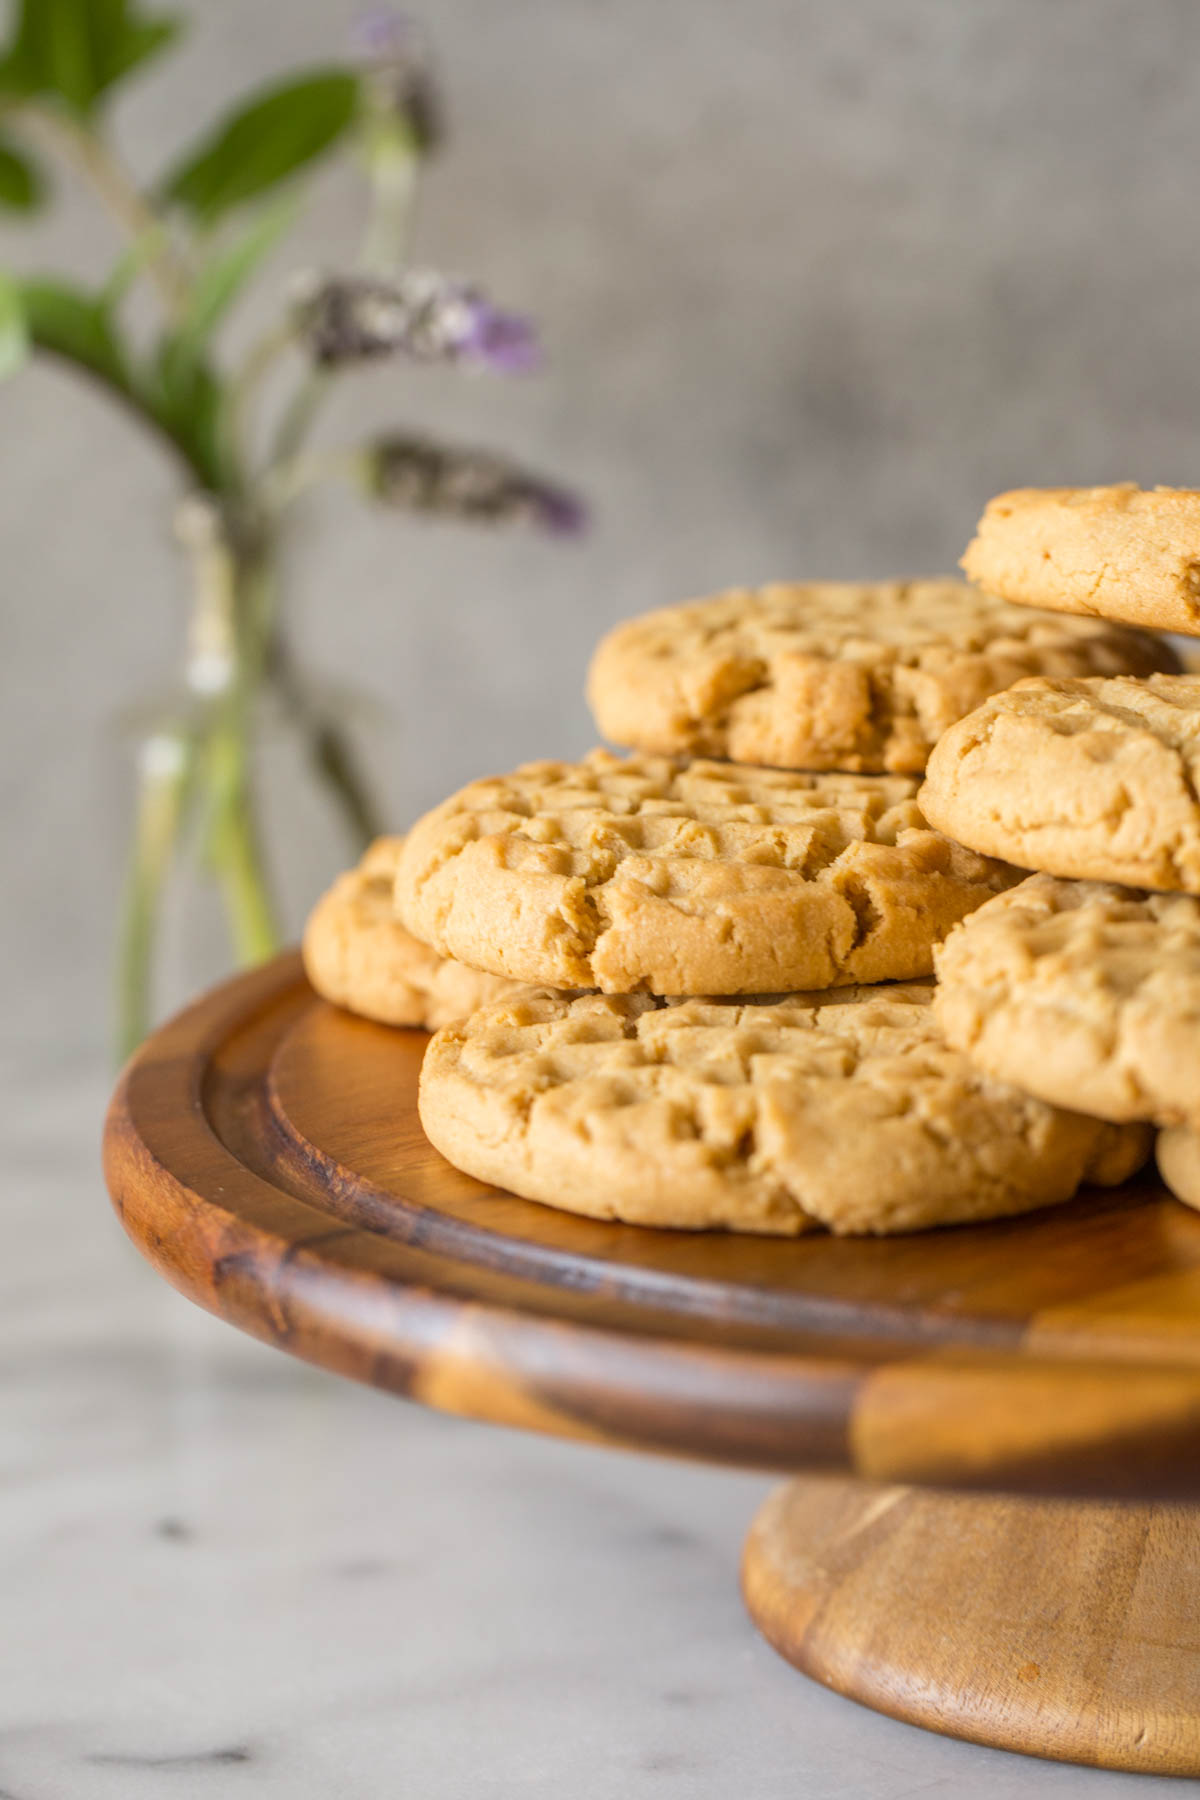 Close up view of Soft and Chewy Peanut Butter Cookies on a cake stand with a grey background.